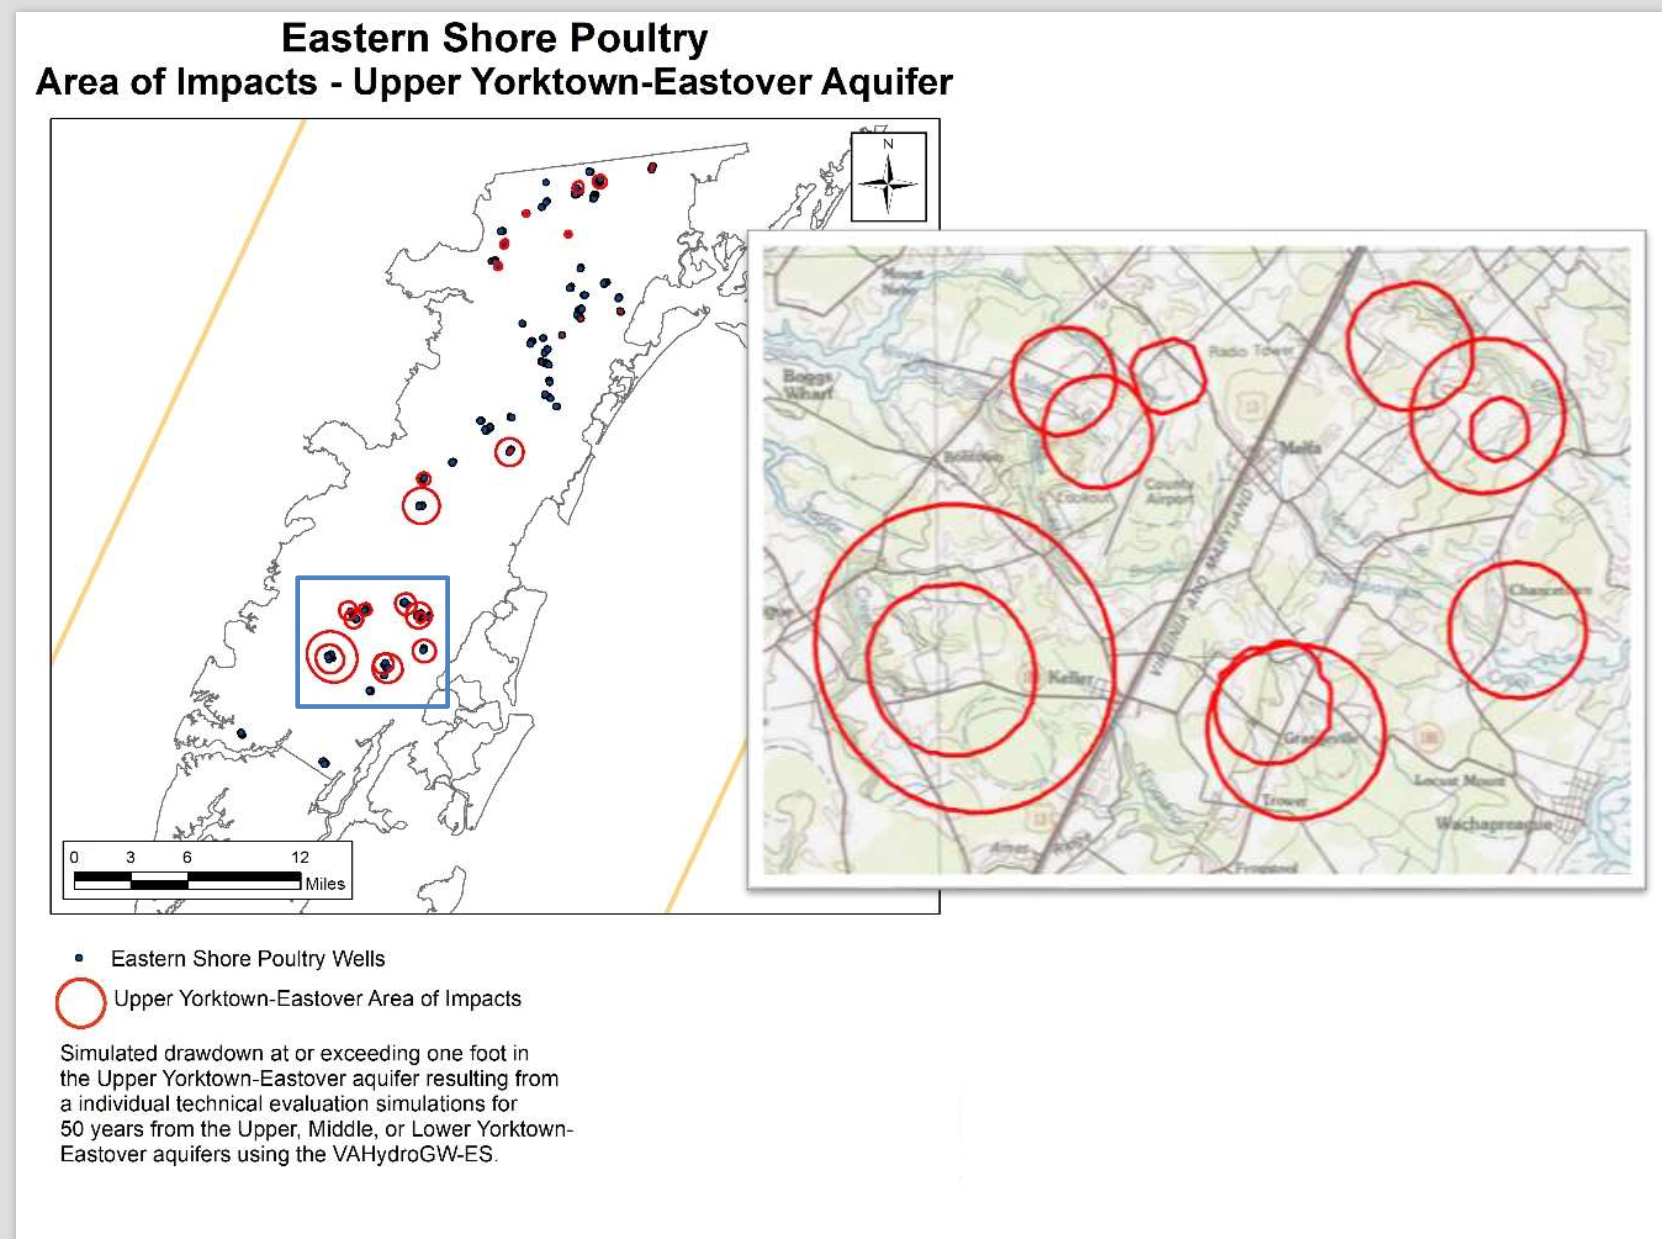 Areas of impact for Eastern Shore of Virginia poultry operation wells